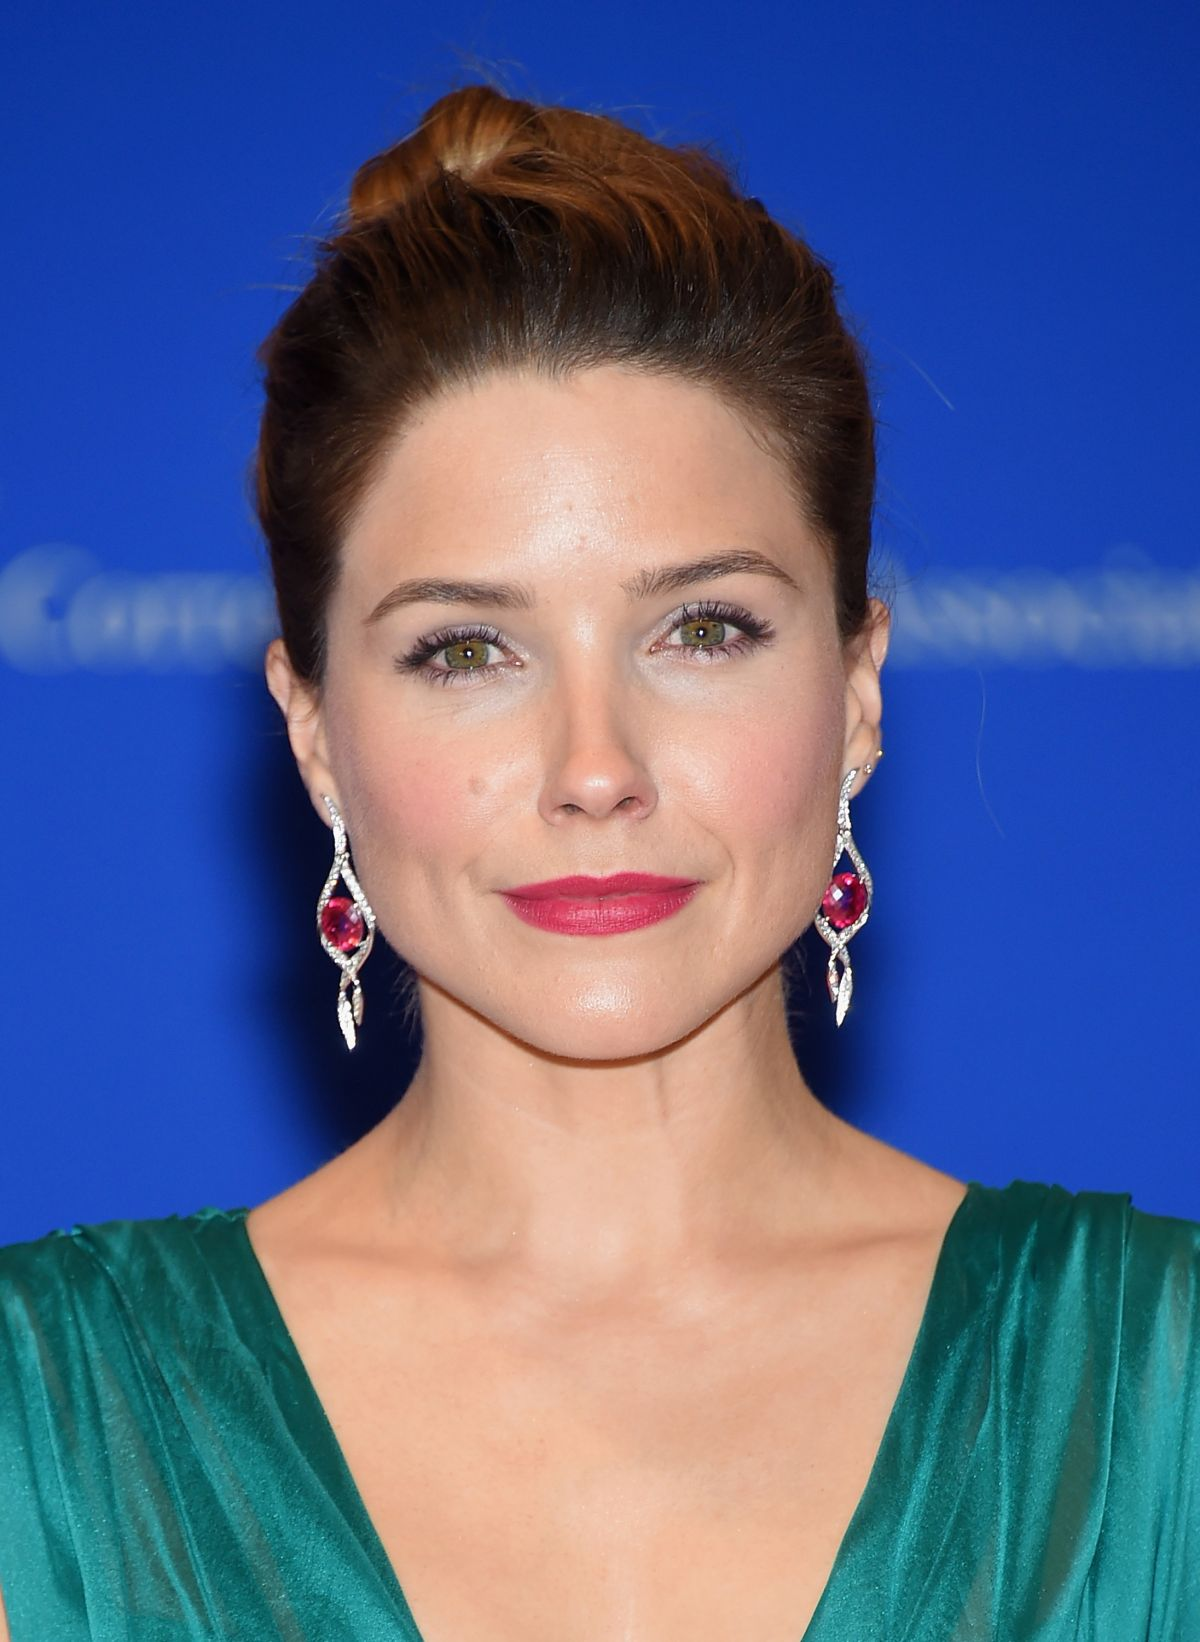 SOPHIA BUSH at White House Correspondents Association Dinner in Washington